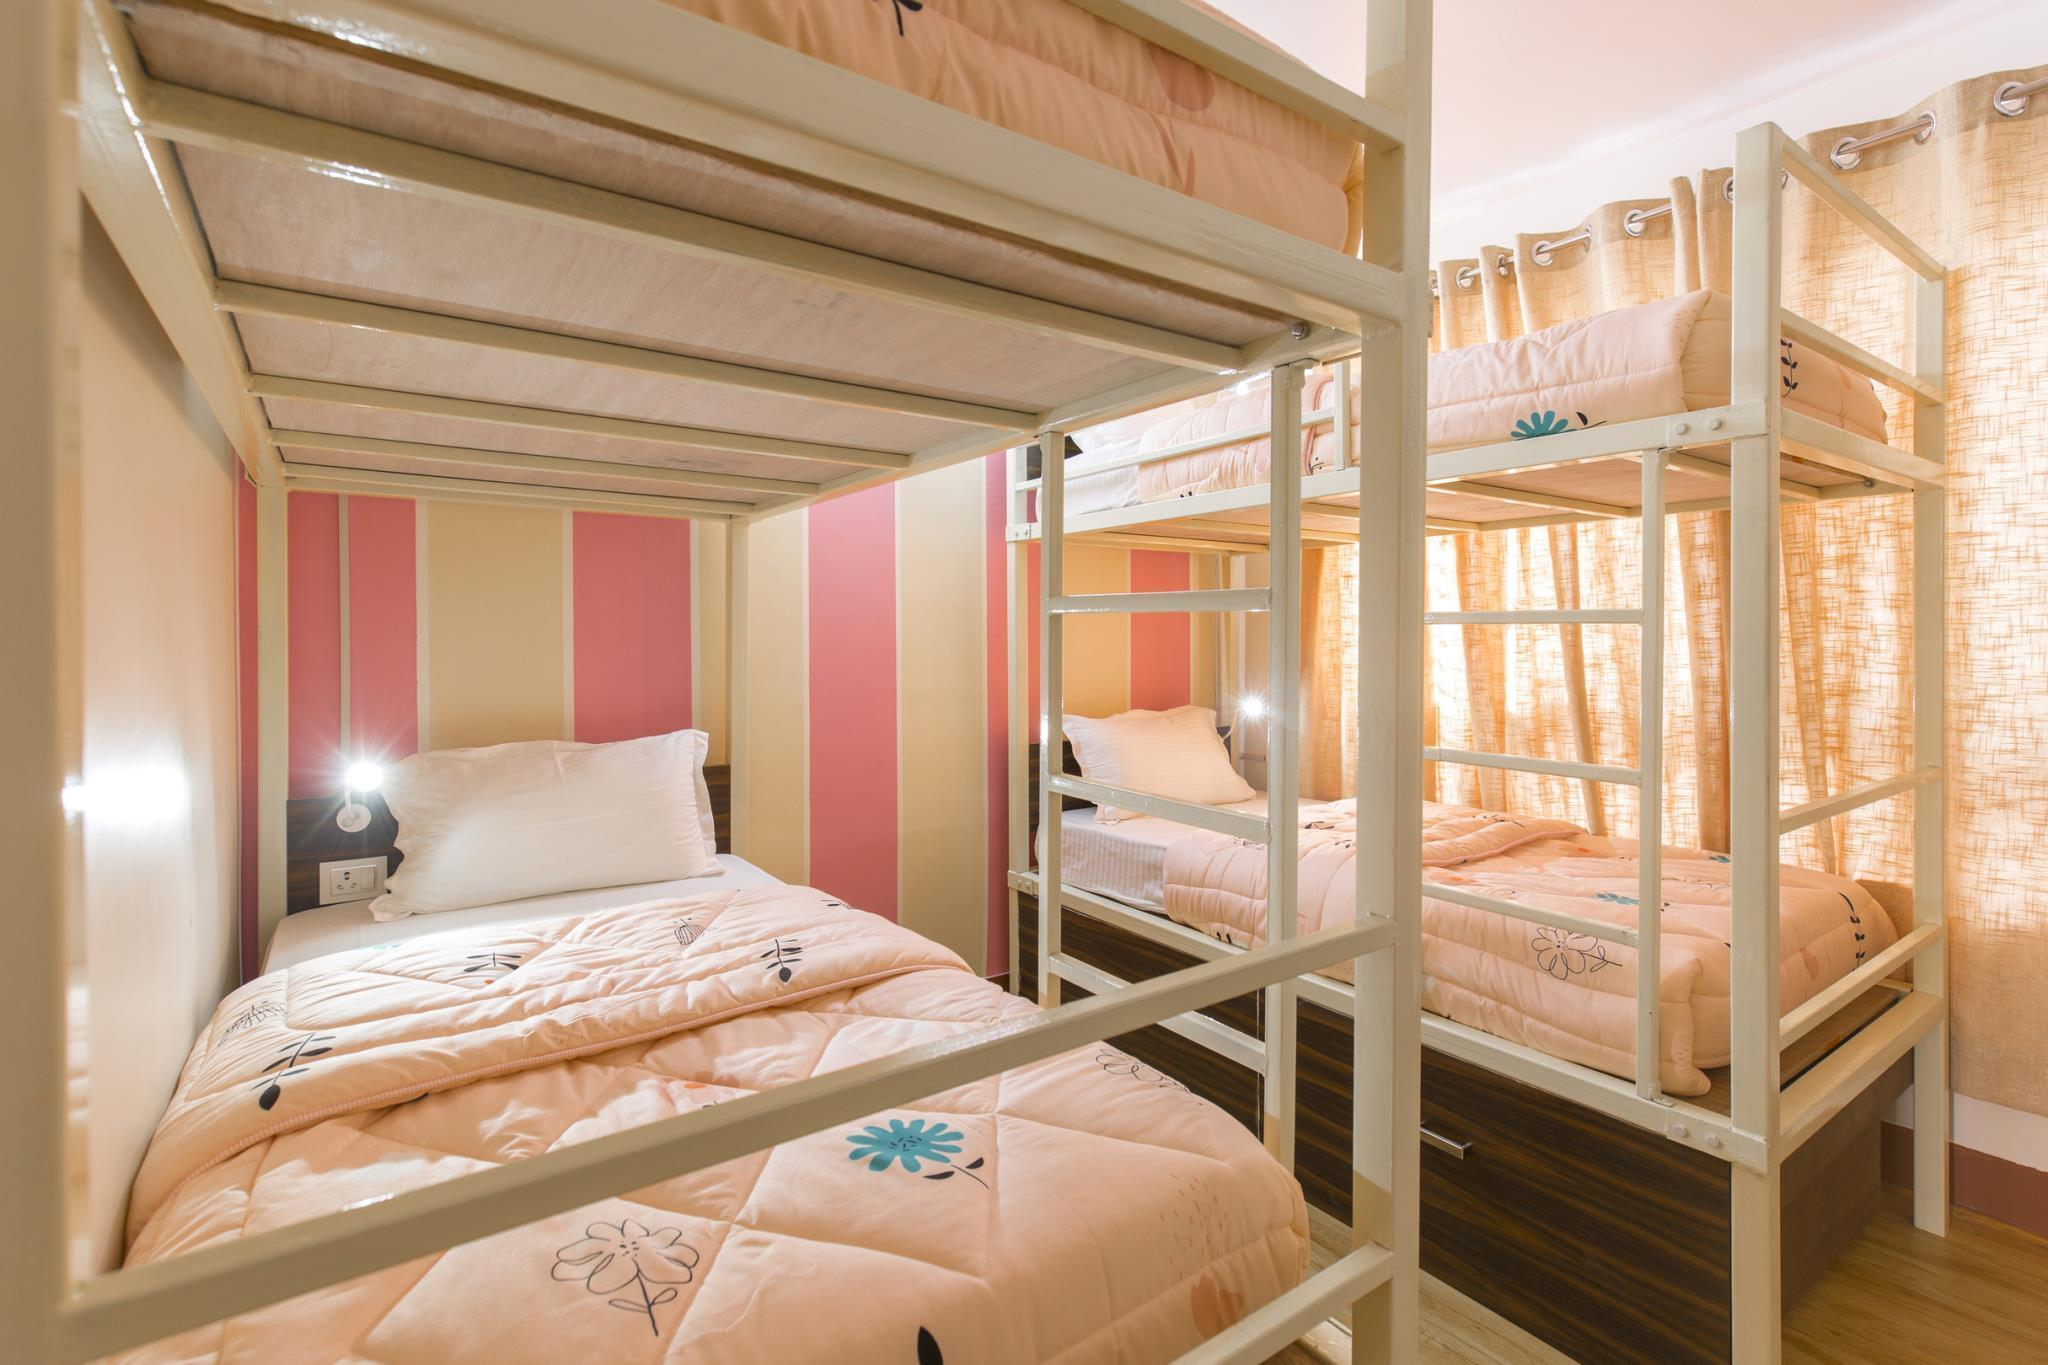 4-Bed Dormitory (Female)